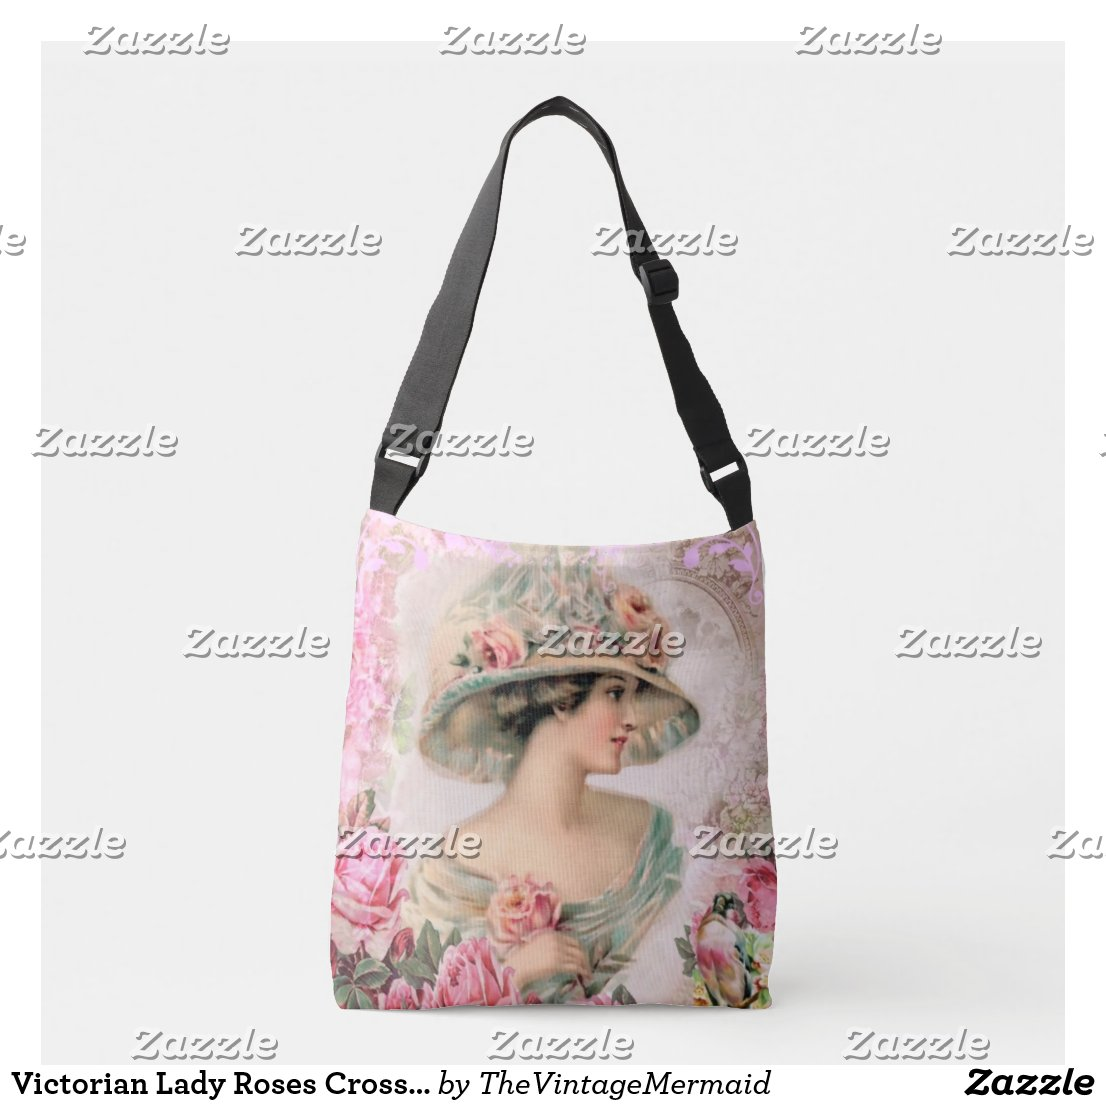 Victorian Lady Roses Cross Body Tote Bag